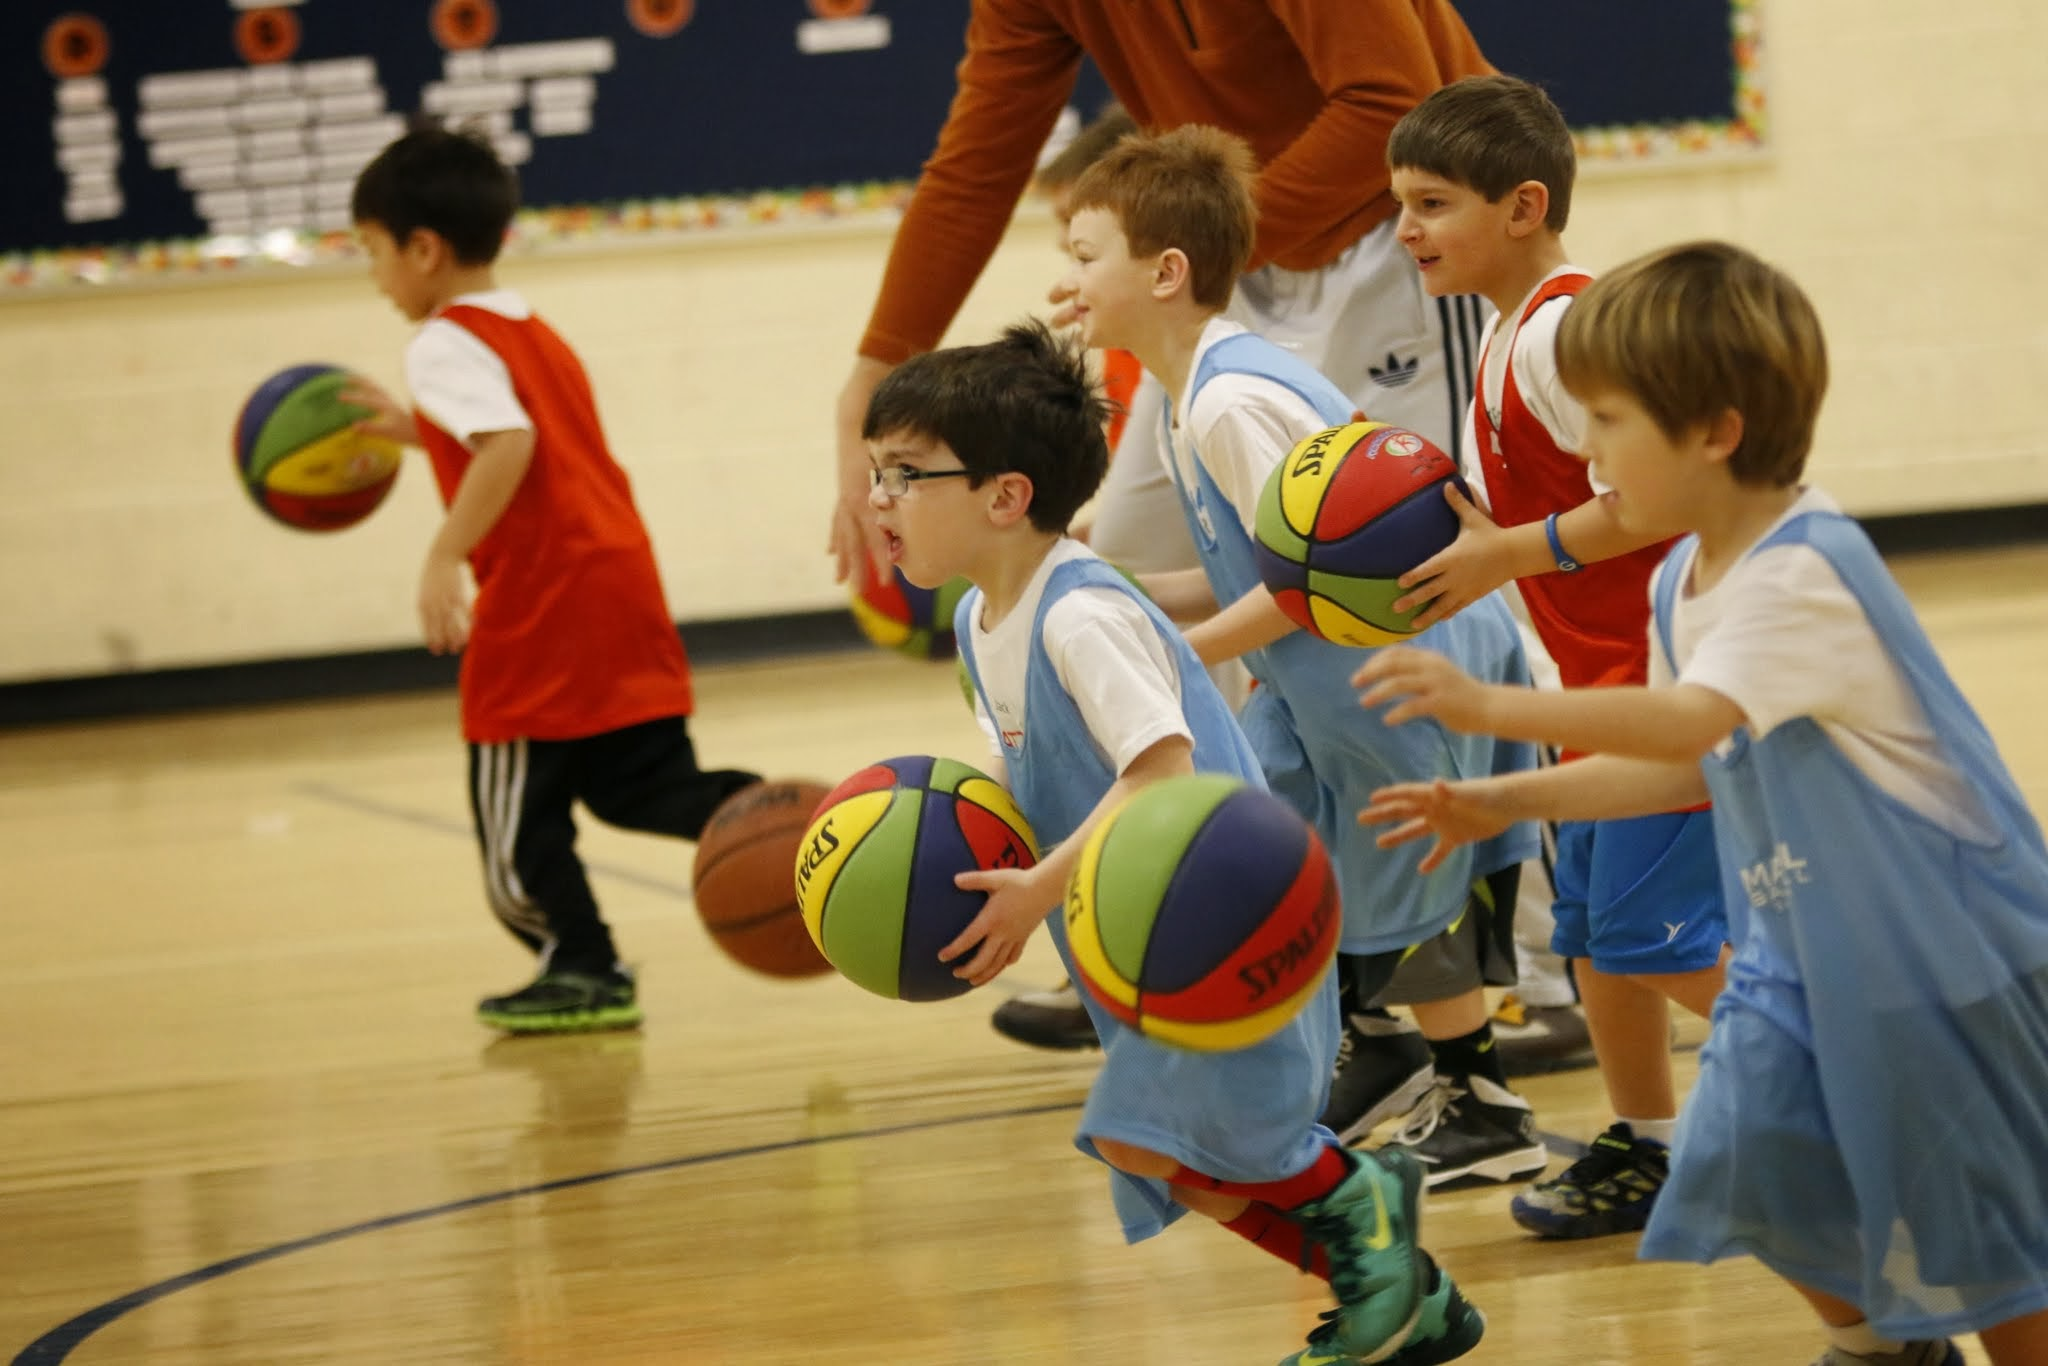 Saturday Basketball @ Enfield Elementary   Ages 4-5 9:00 - 9:55 am  Ages 6-7, 10:00 - 10:55am  Ages 7-8 11:00 am - 12:00 Noon     REGISTER HERE    DATES AND TIMES MAY BE SUBJECT TO CHANGE